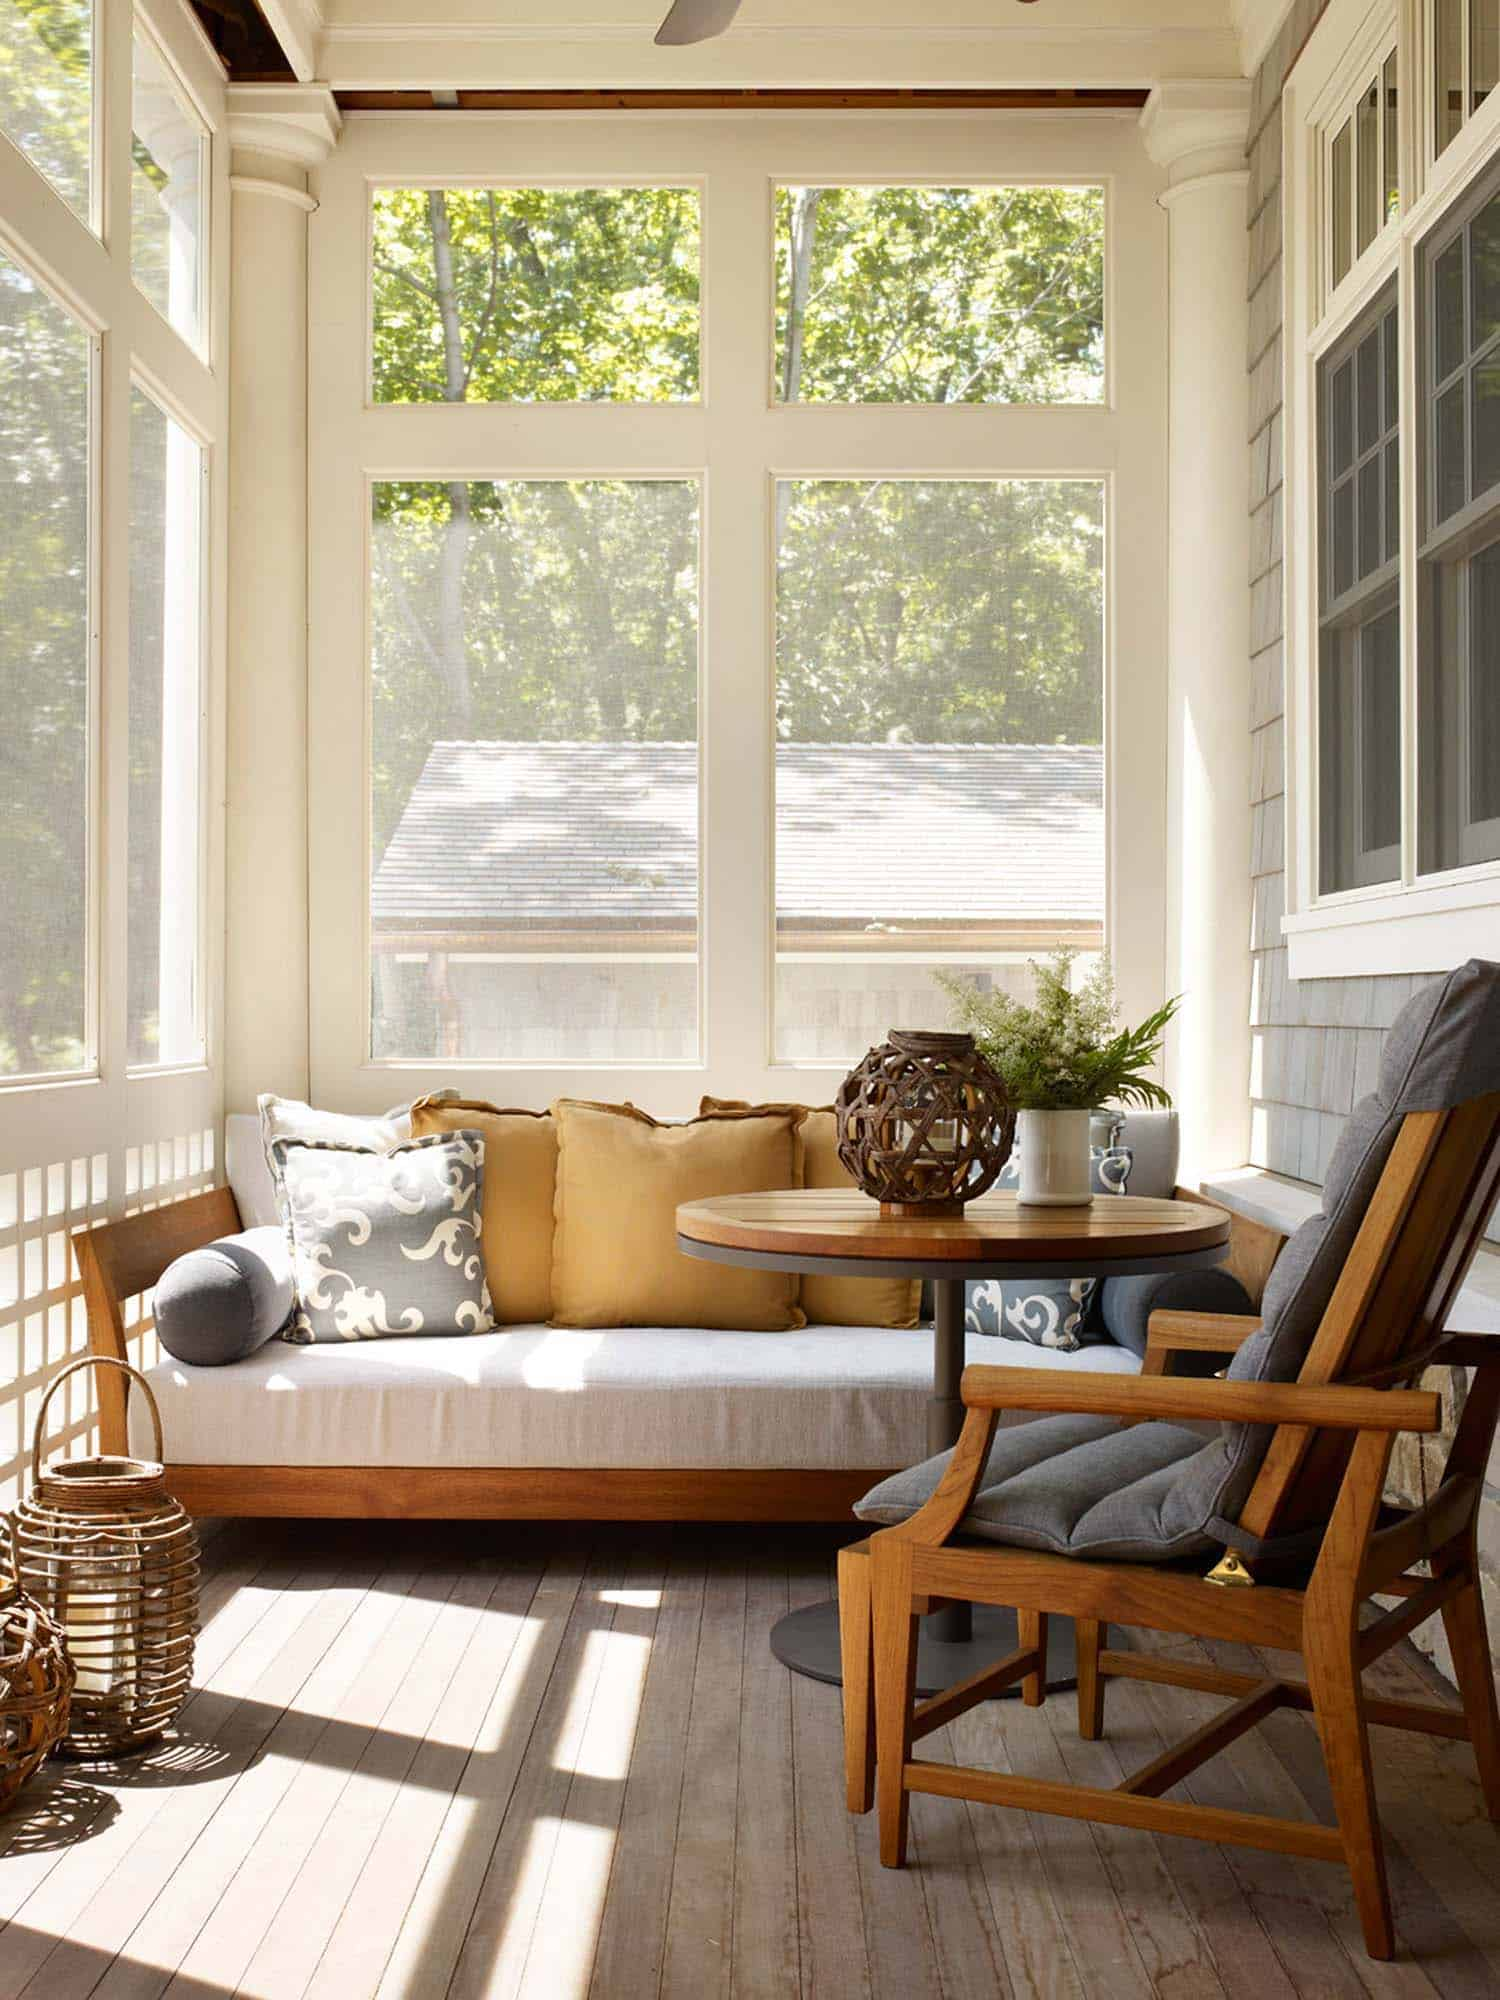 screened porch design ideas 38 1 kindesign - Screened In Porch Design Ideas